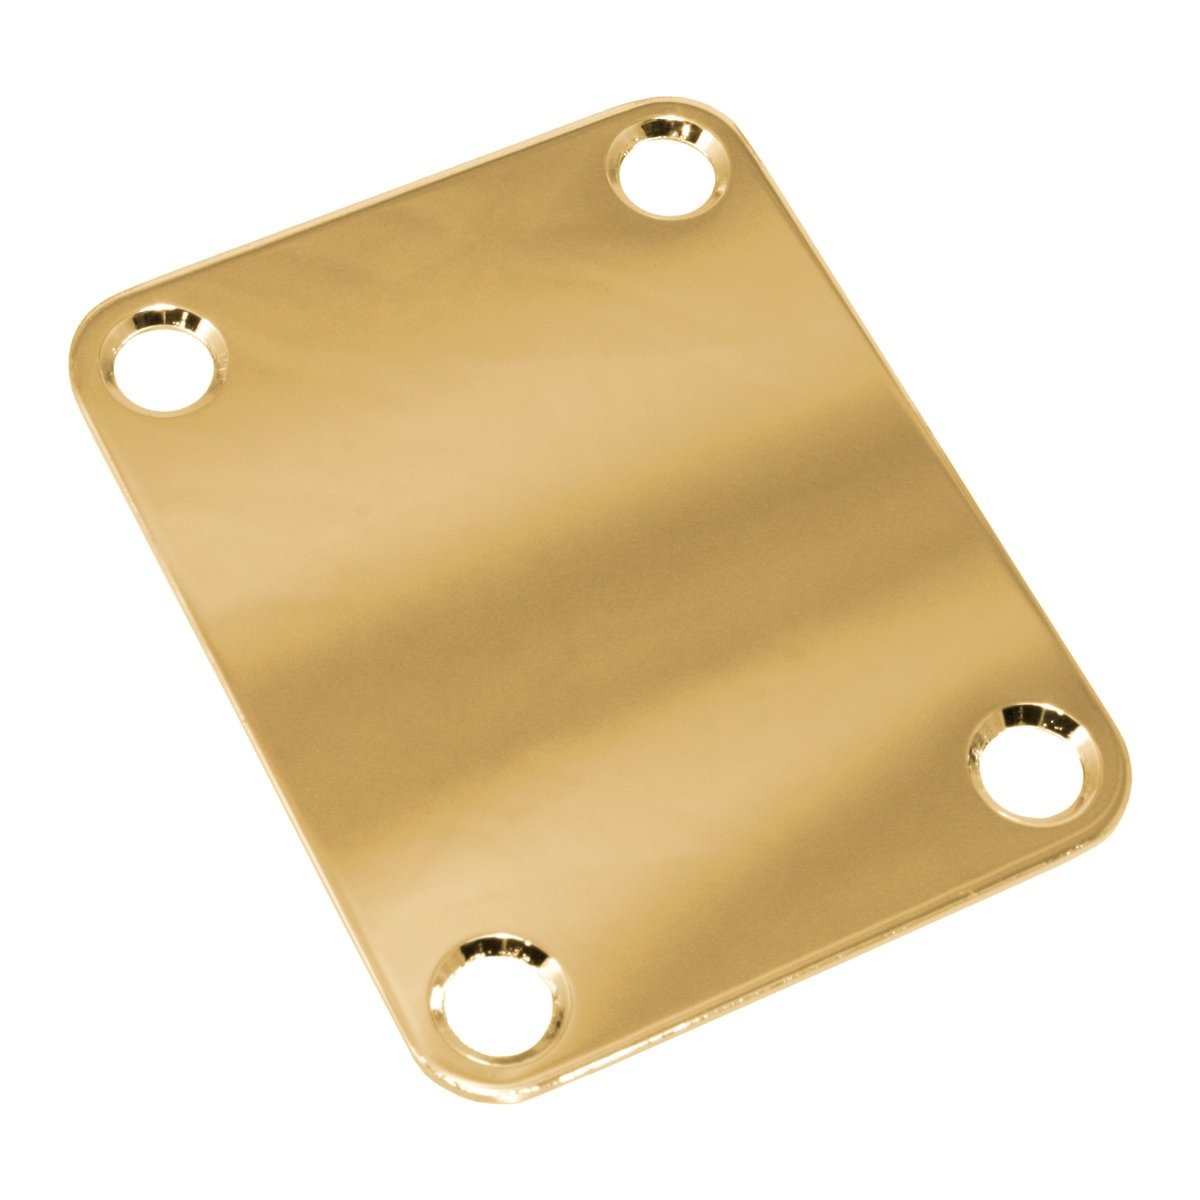 AllParts AP-0600-001 Standard Neck Plate - Gold